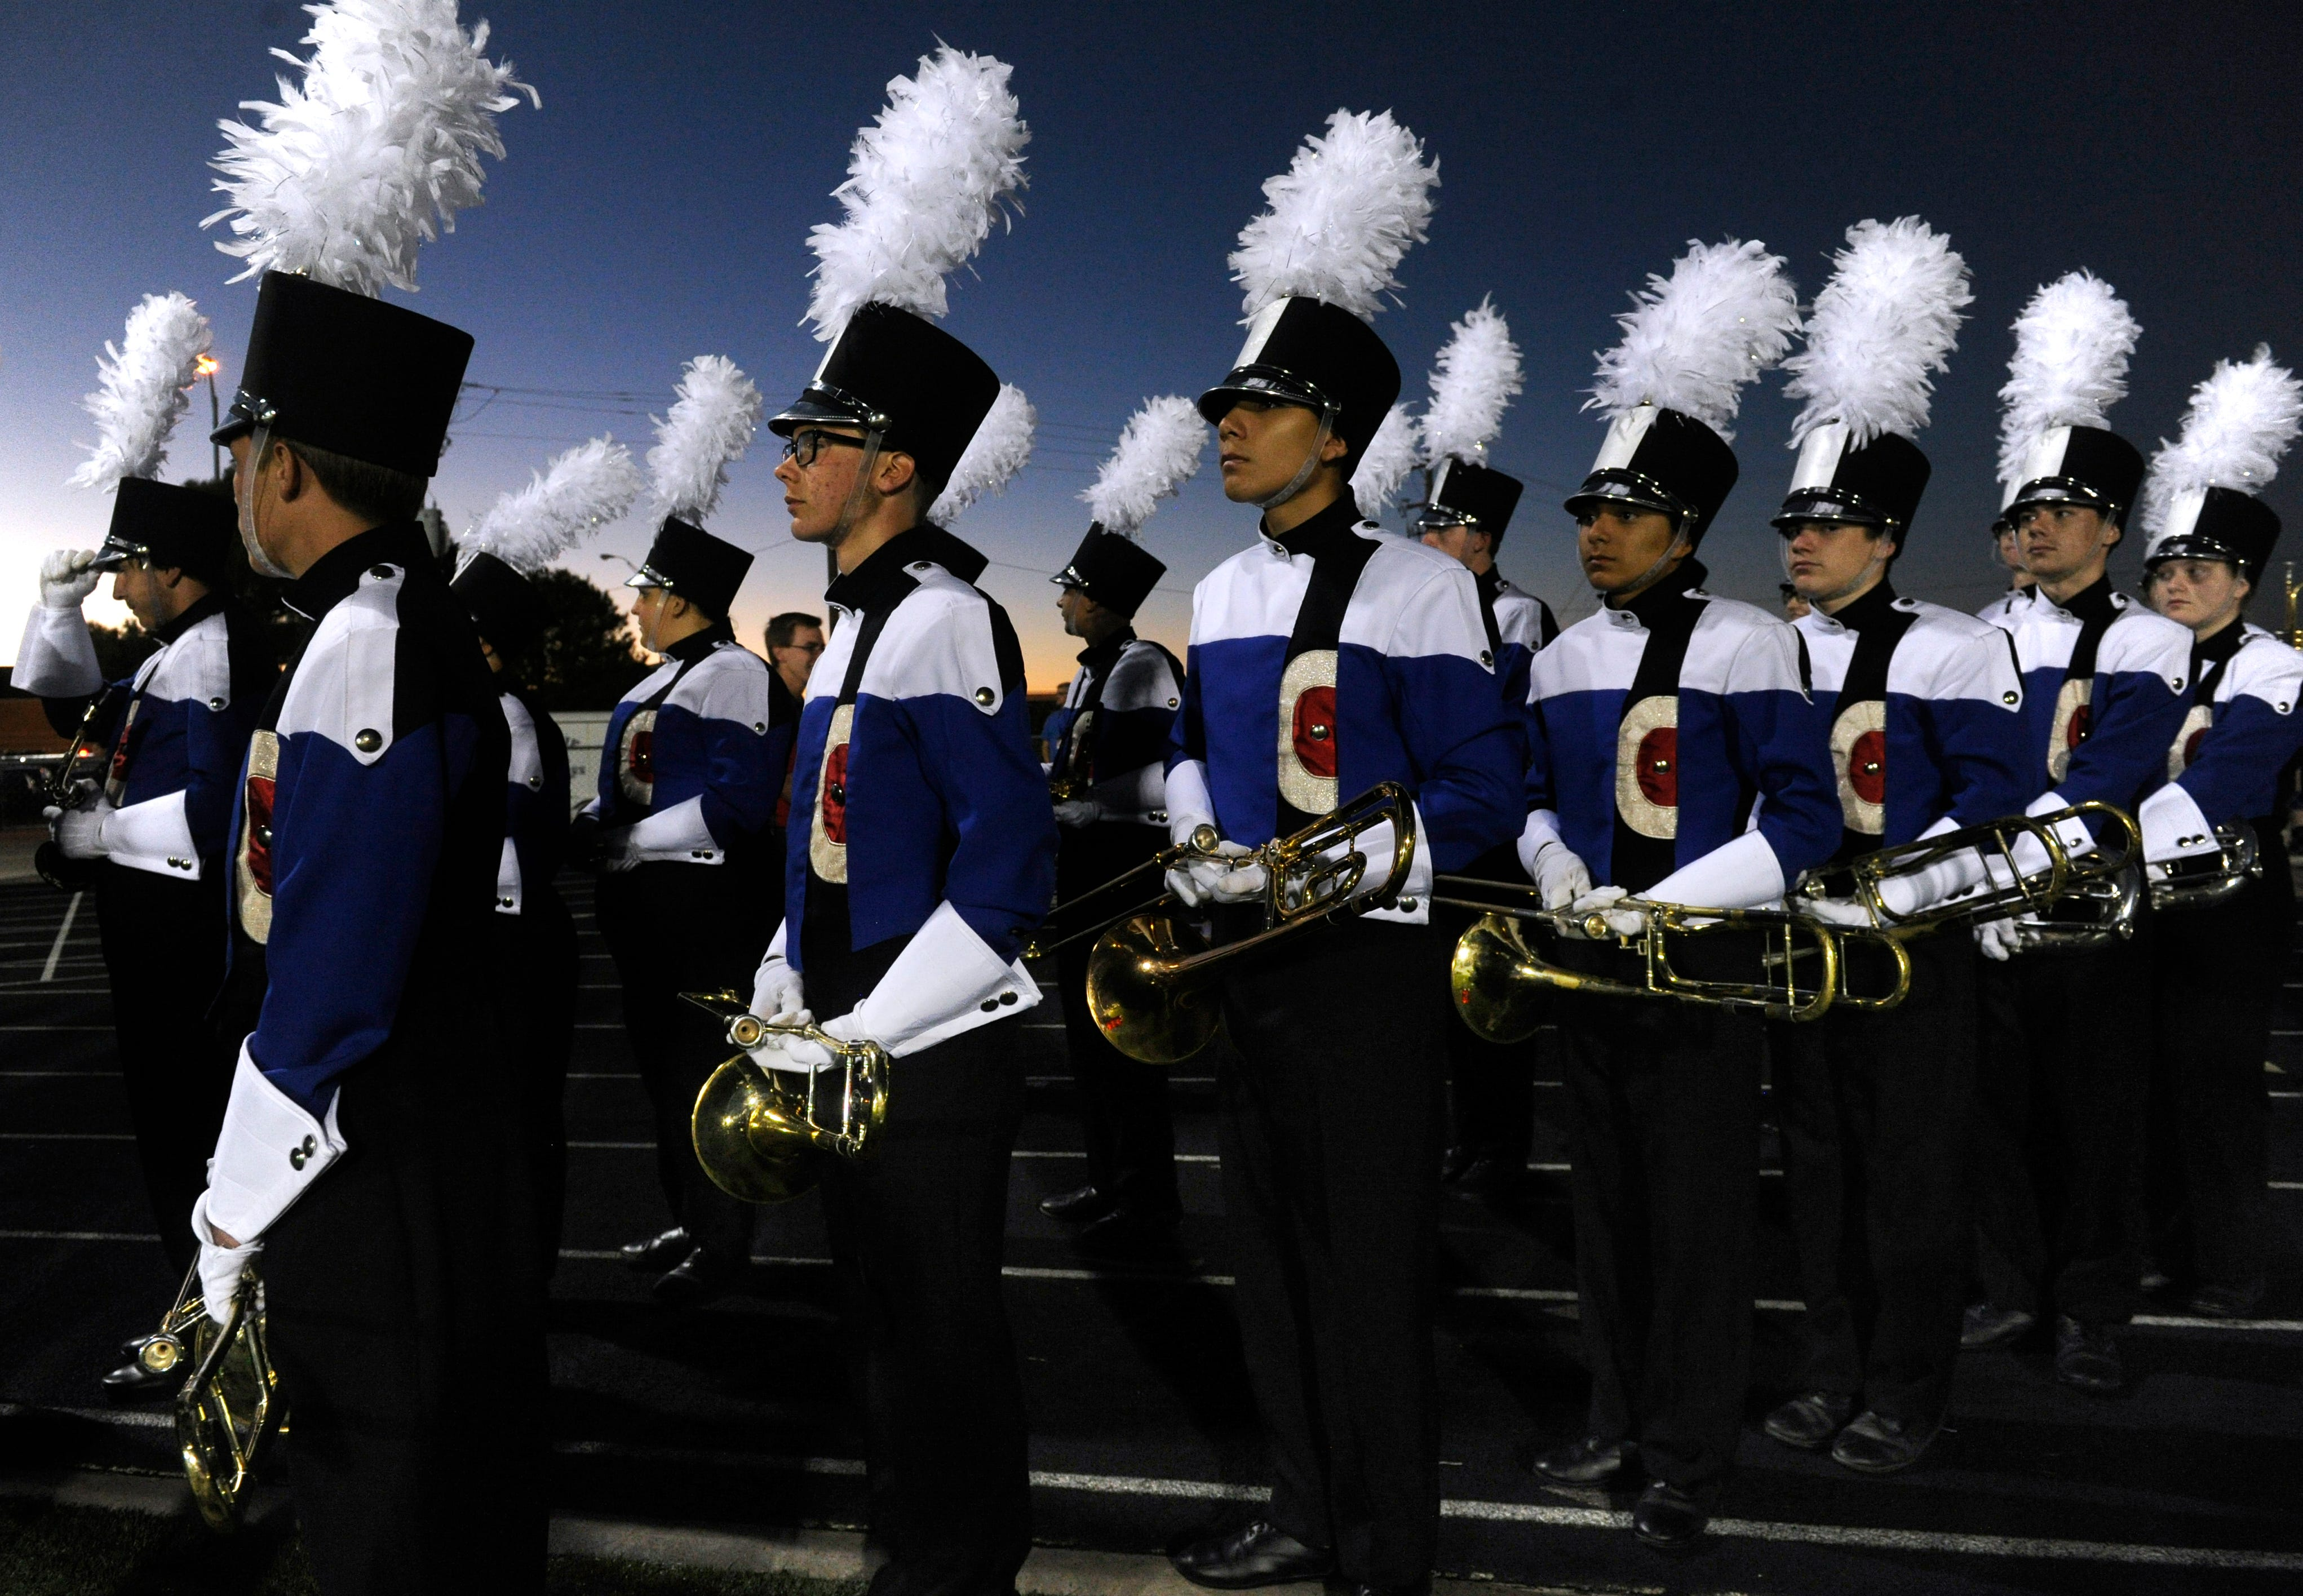 Marching Band Themed Porn